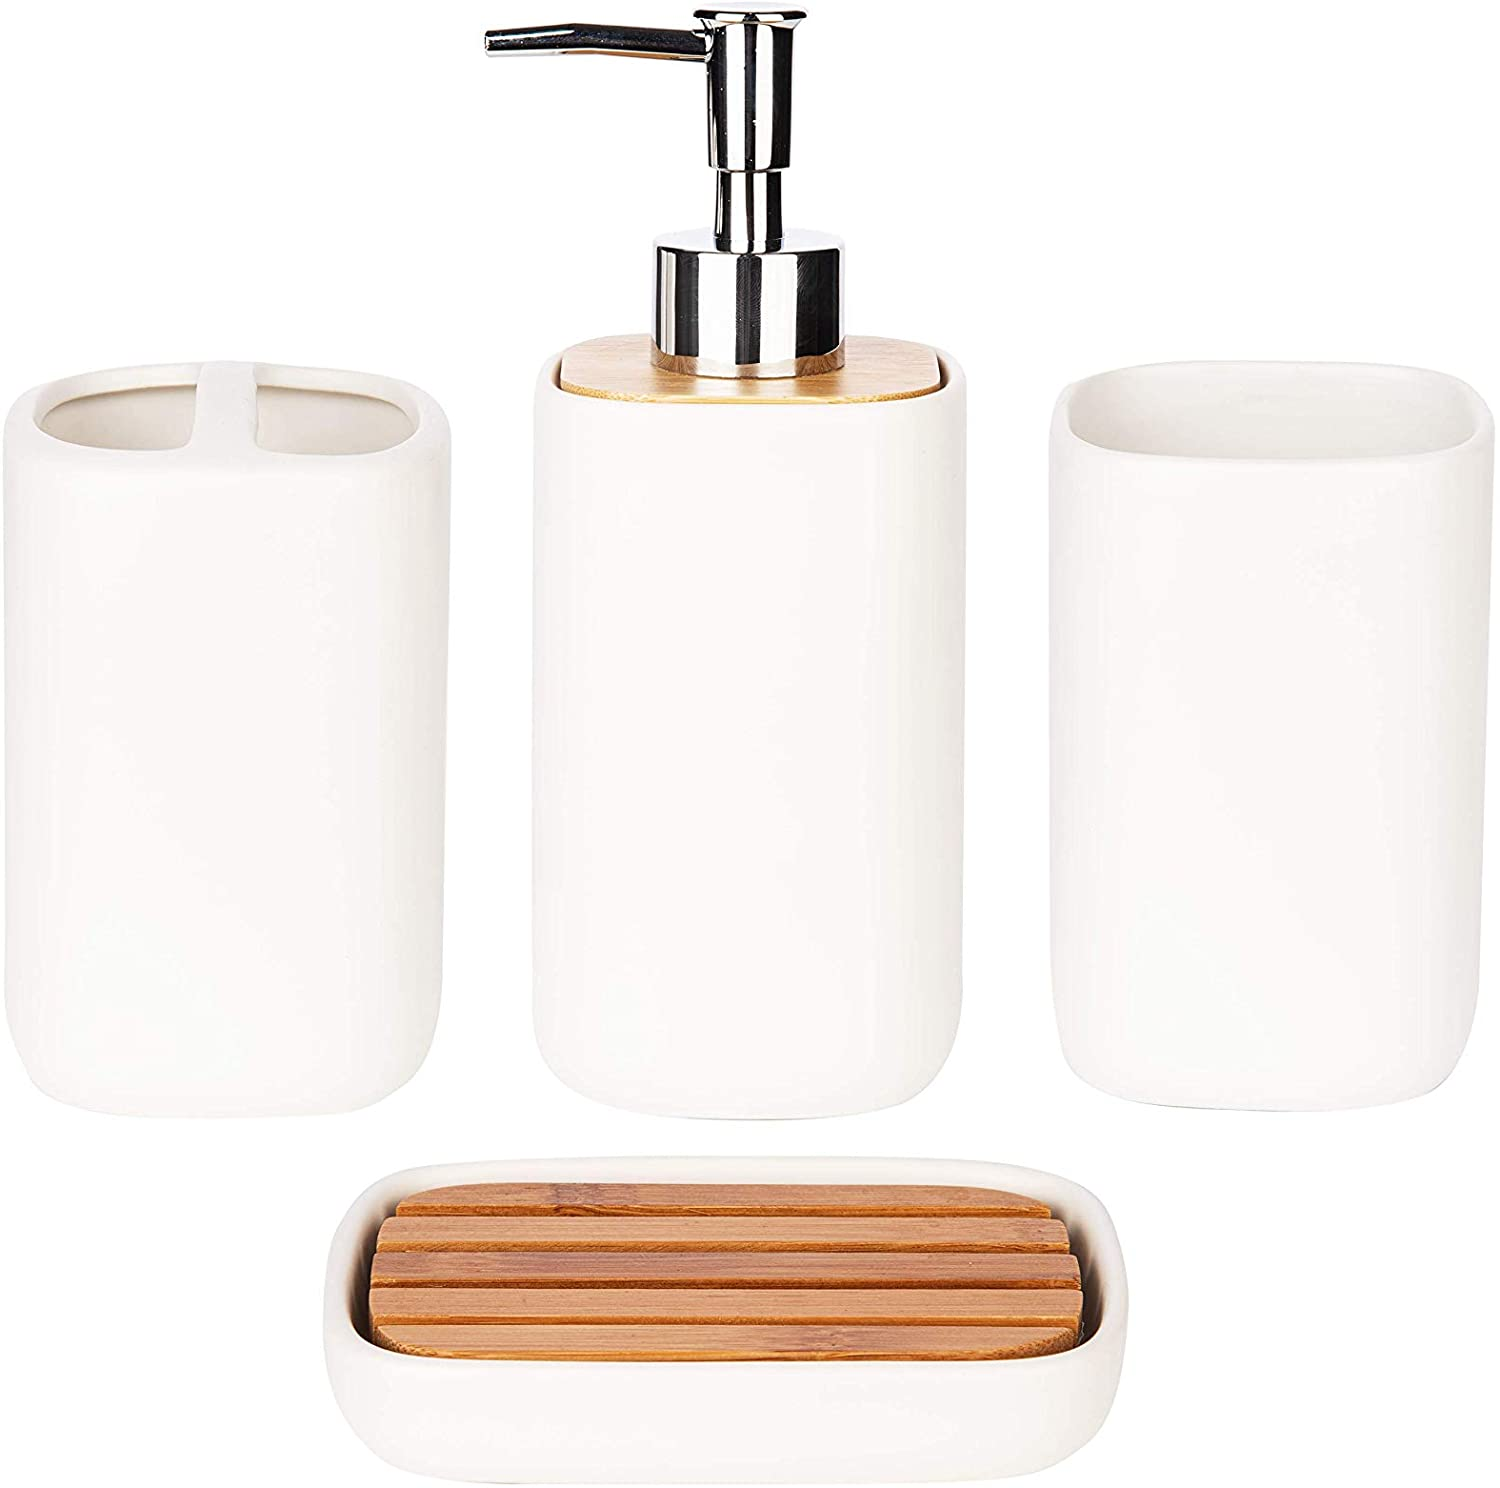 Wodlo - 4-Piece Ceramic with Bamboo Bathroom Accessories Set - Complete Bath Accessory Sets Includes Soap Dispenser, Toothbrush Holder, Tumbler, Soap Dish, (White)